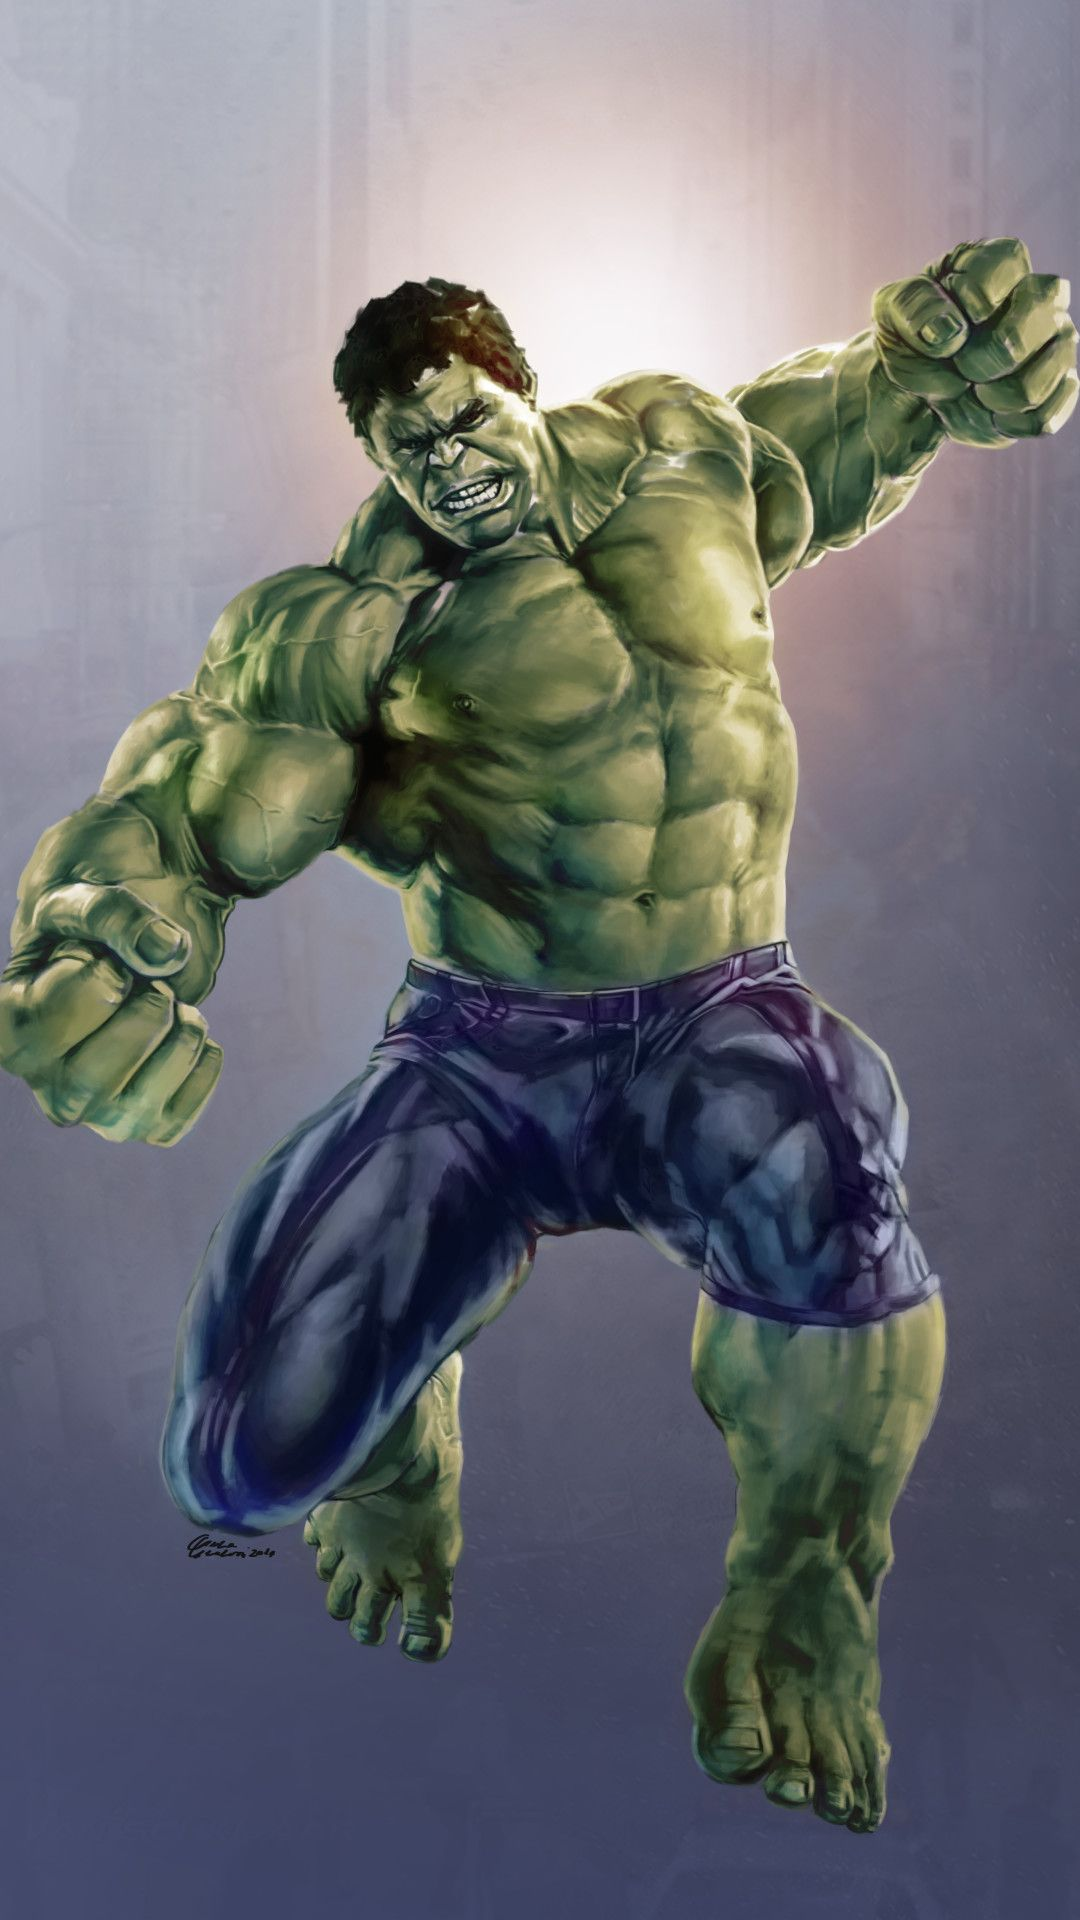 Incredible Hulk Avengers Mobile Wallpaper (iPhone, Android